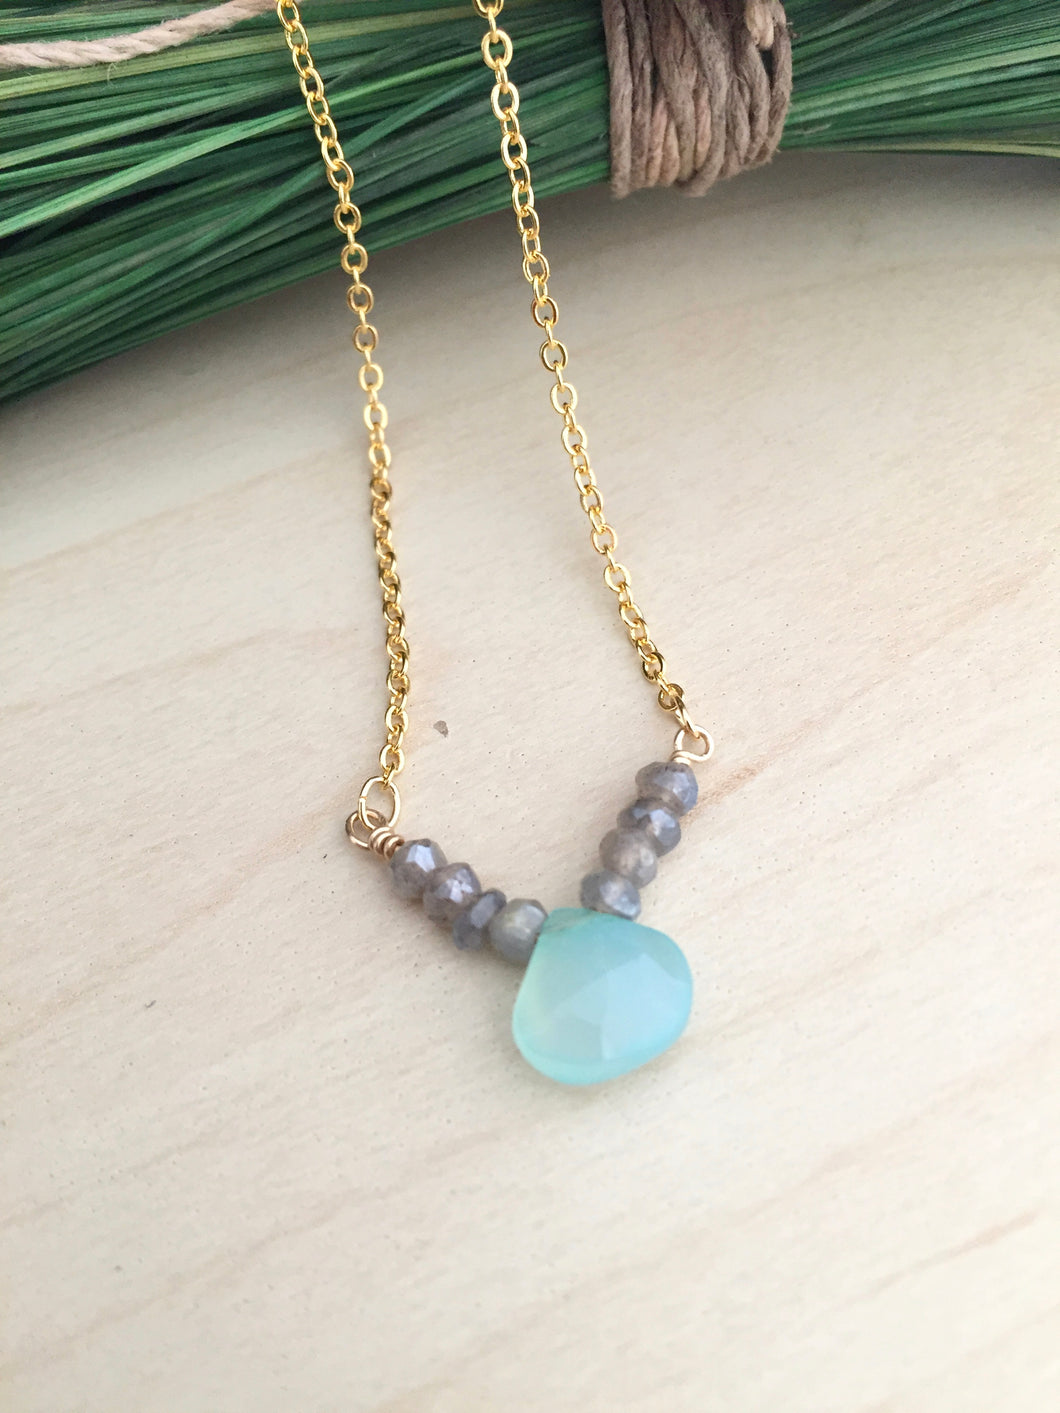 Aqua Chalcedony and grey labradorite v shaped pendant necklace